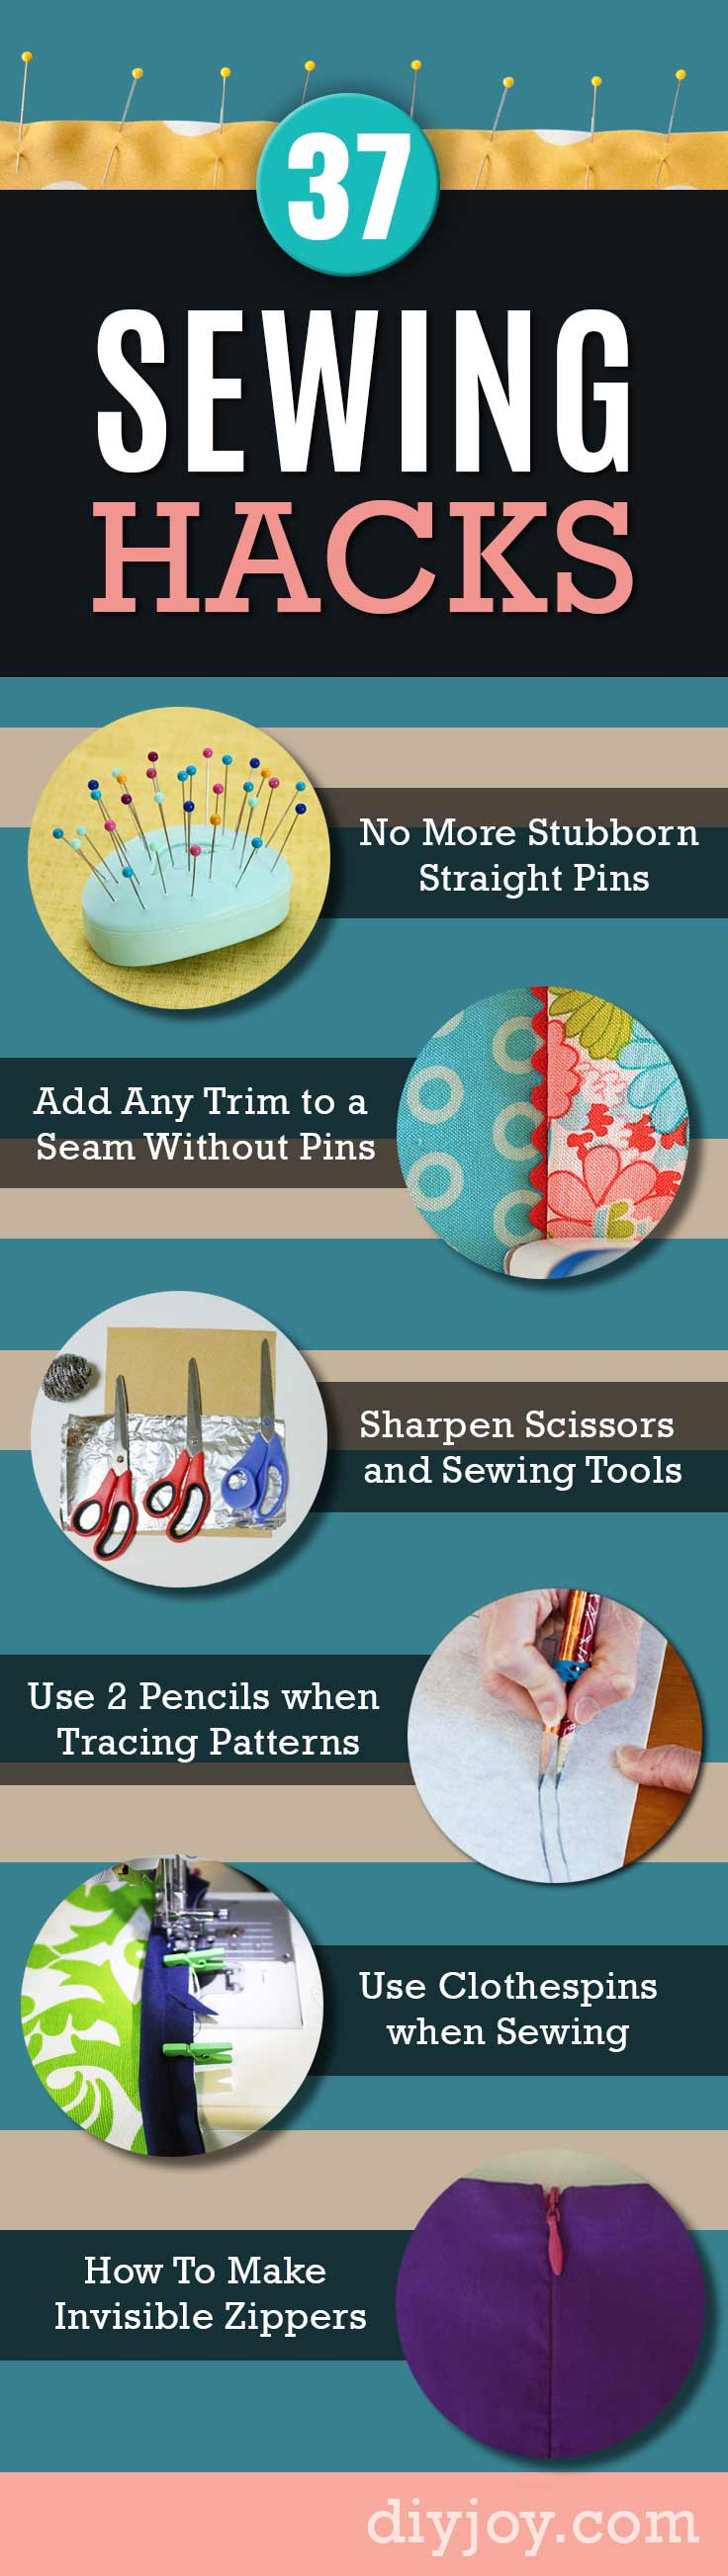 37 sewing hacks youll wish you knew before now diy joy sewing hacks best tips and tricks for sewing patterns projects machines hand jeuxipadfo Image collections